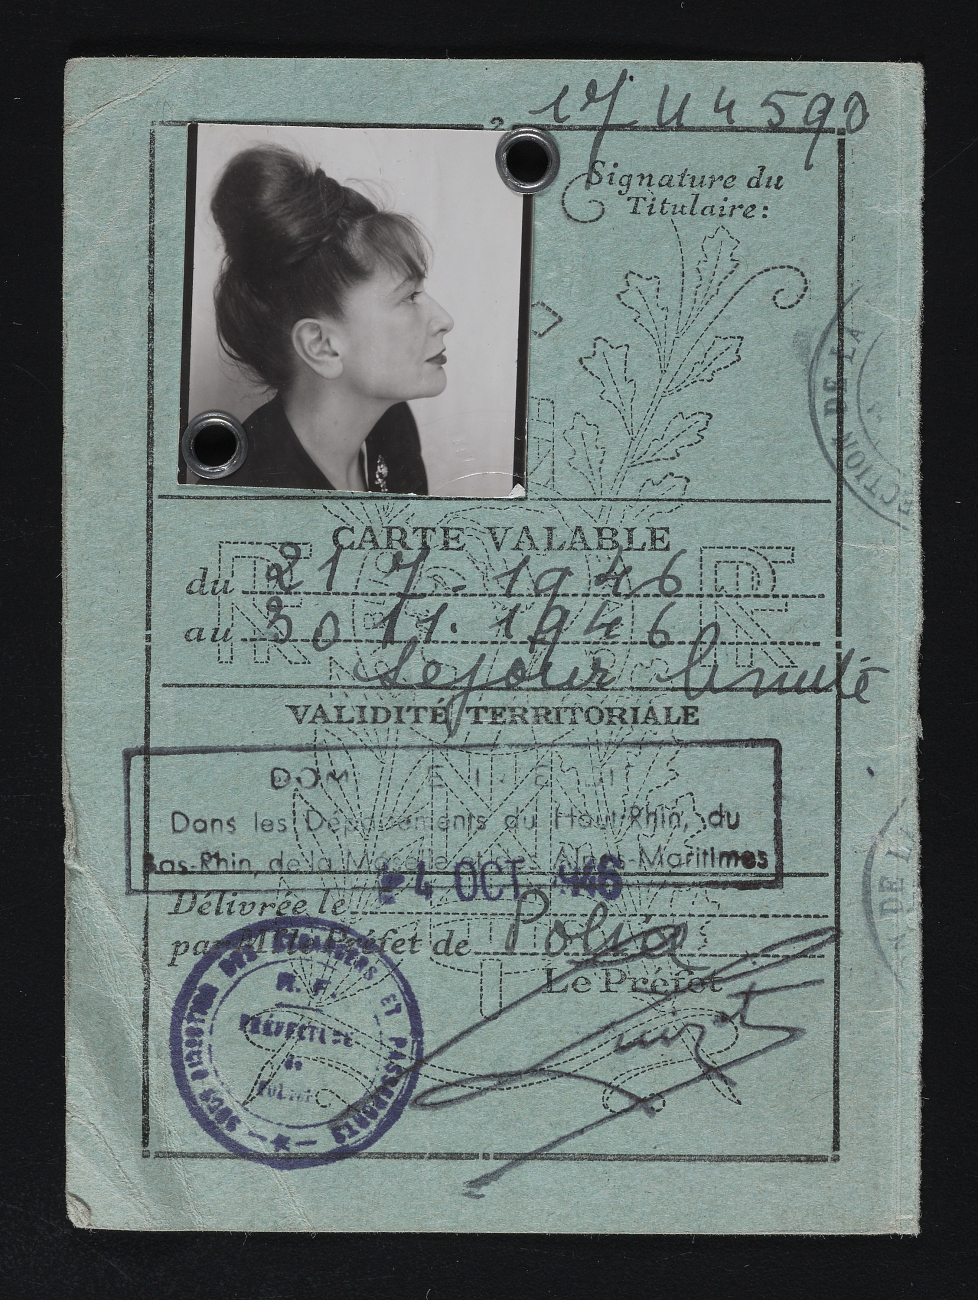 Hedda Sterne's 1946 ID card from her first trip back to Paris after the end of World War II | From the Hedda Sterne papers, 1939-1977 - Archives of American Art, Smithsonian Institution